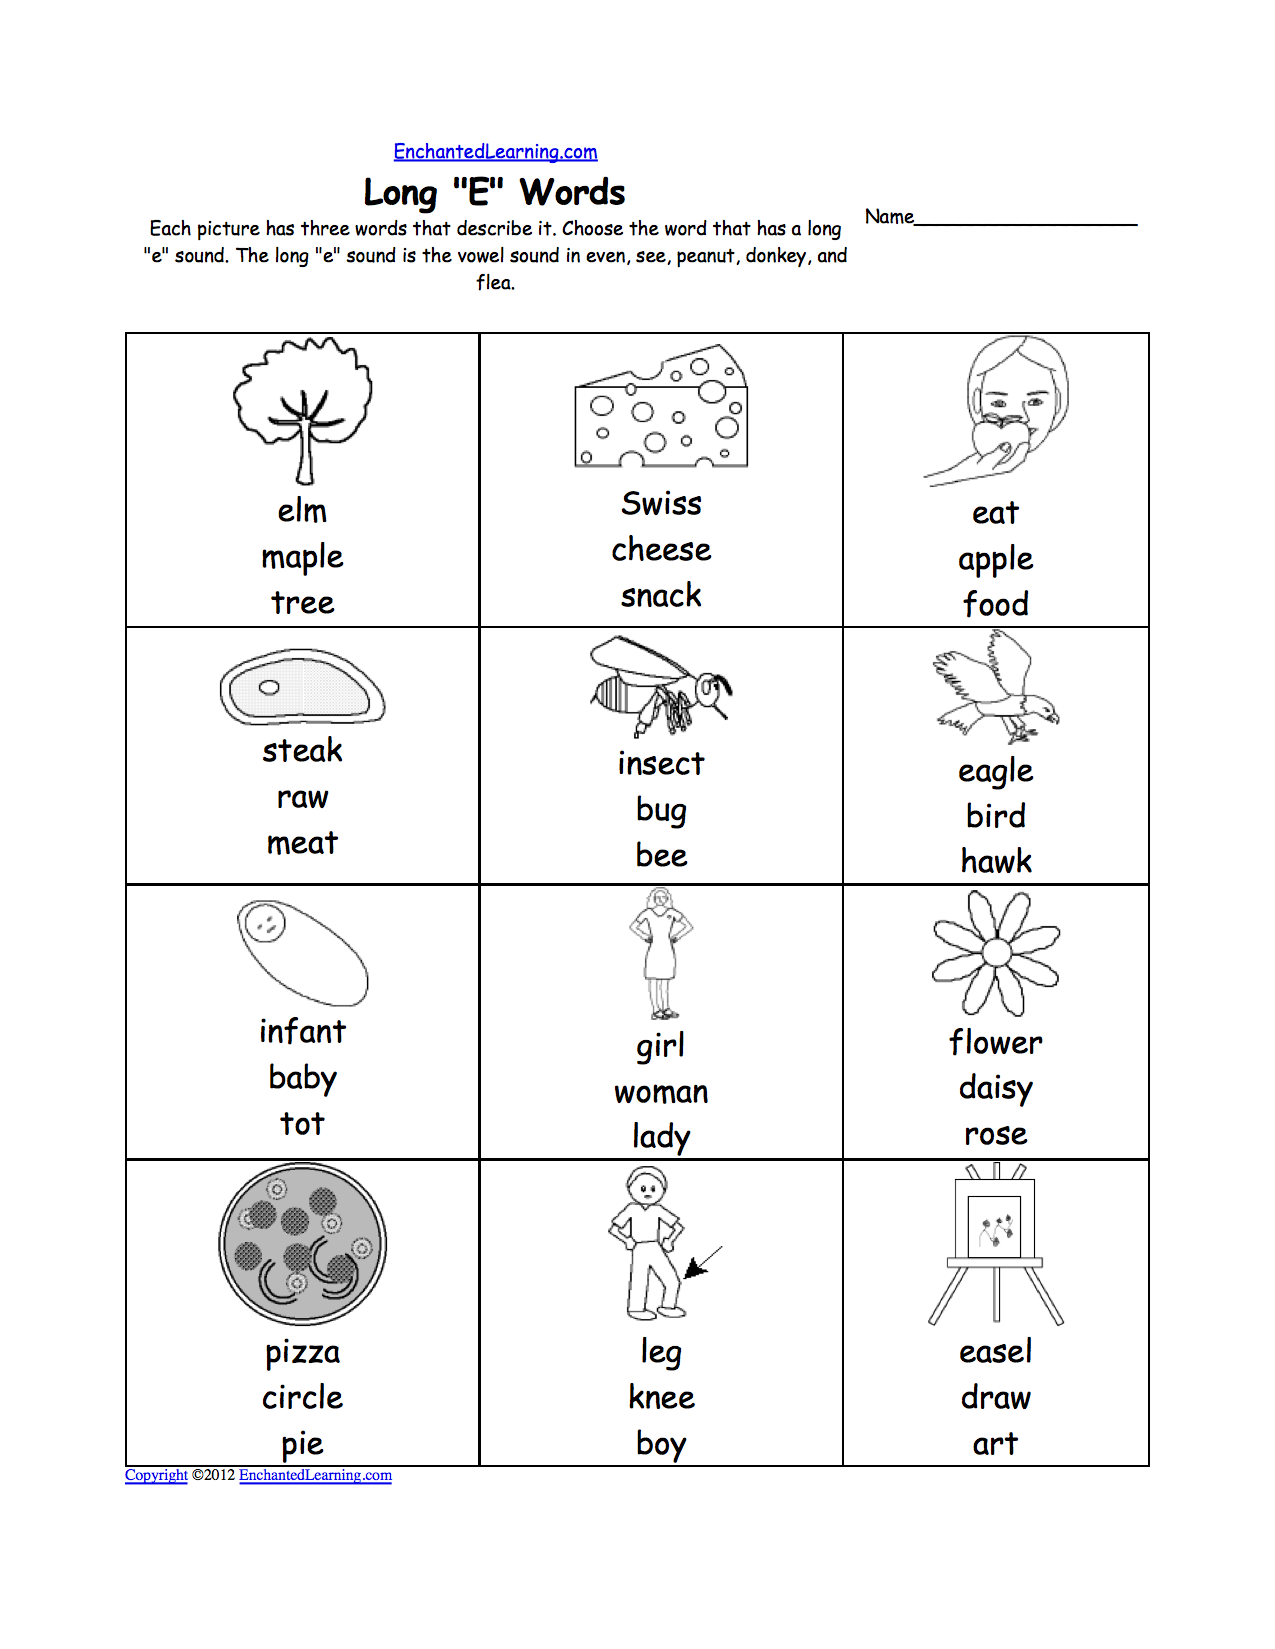 math worksheet : long e alphabet activities at enchantedlearning  : Short E Worksheets For Kindergarten